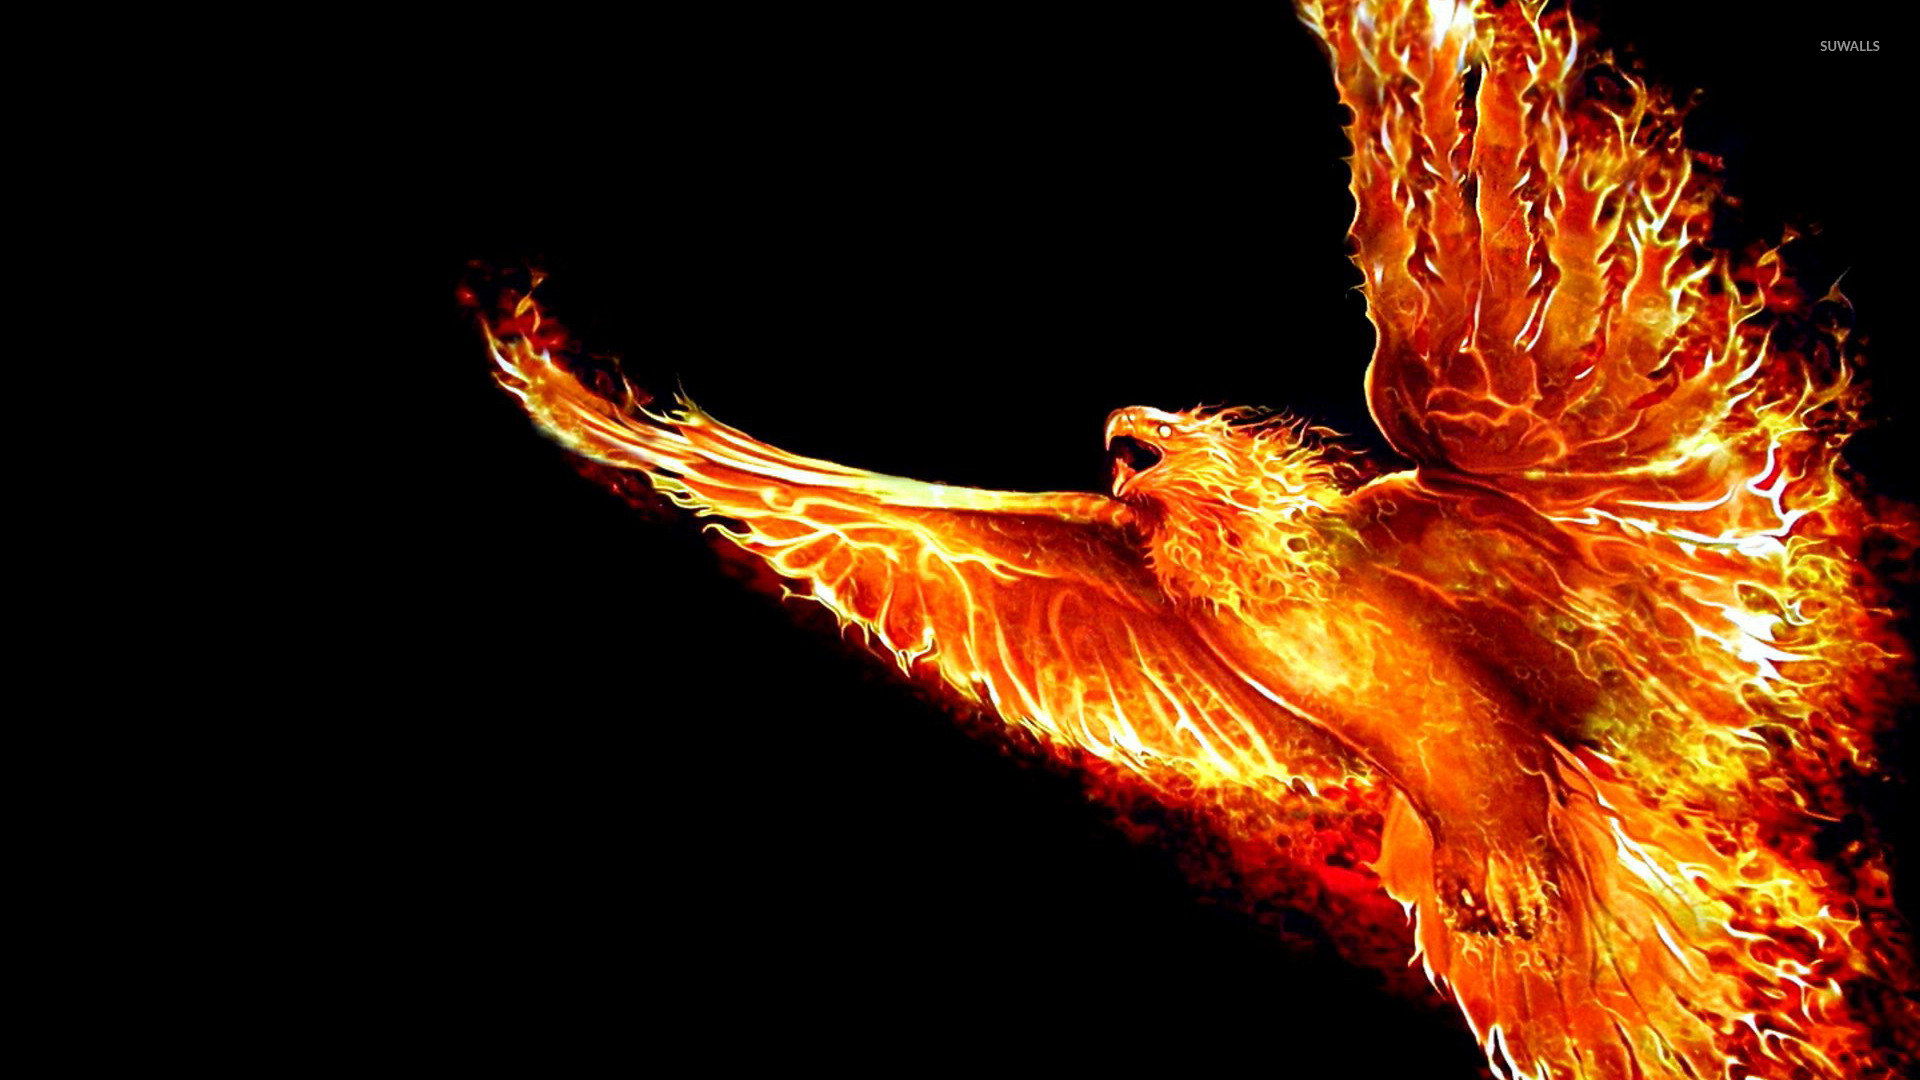 Phoenix wallpaper   Artistic wallpapers   17474 1920x1080